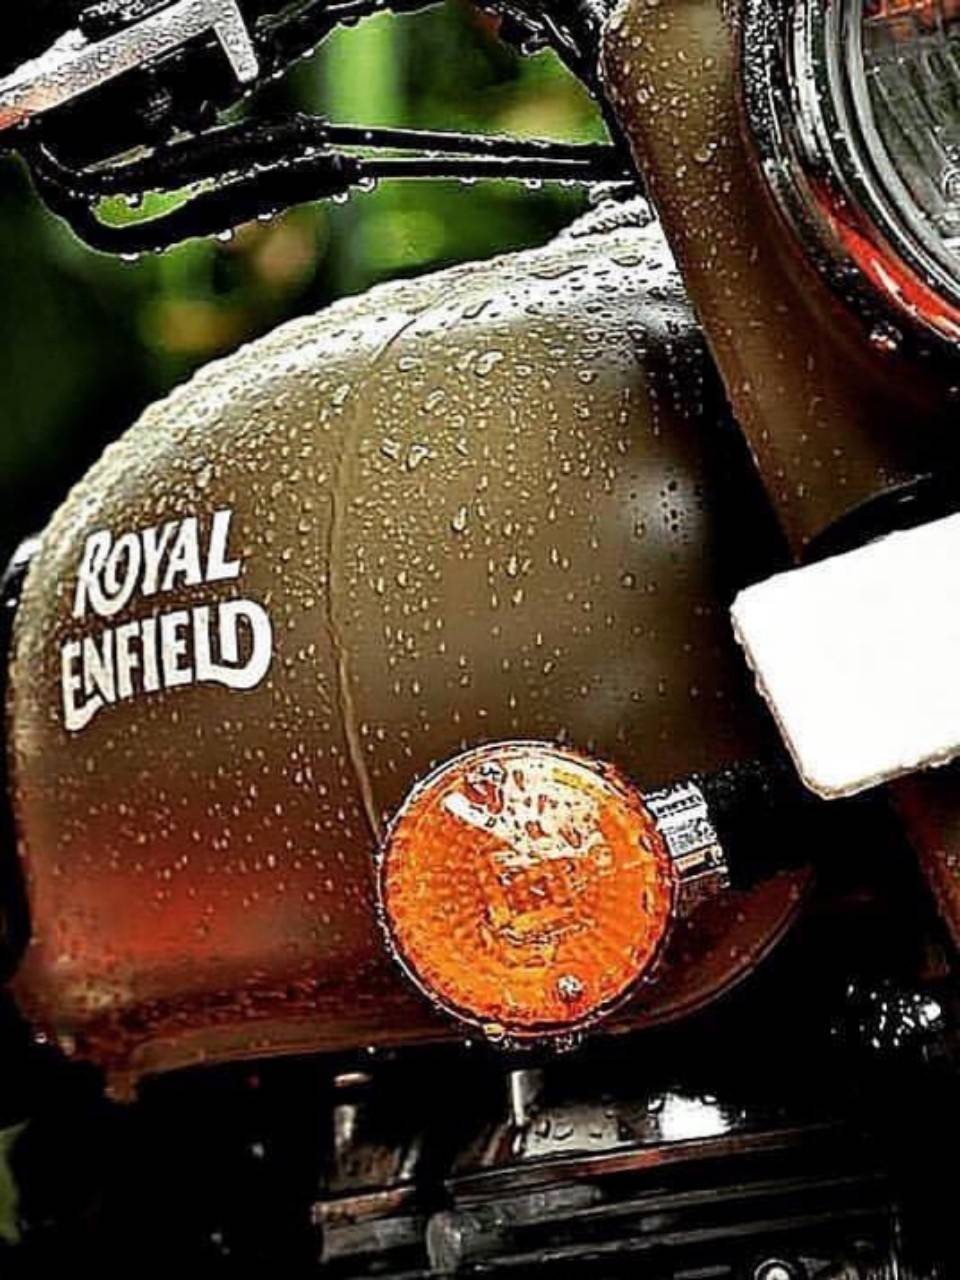 Royal Enfield Hd Wallpapers Top Free Royal Enfield Hd Backgrounds Wallpaperaccess